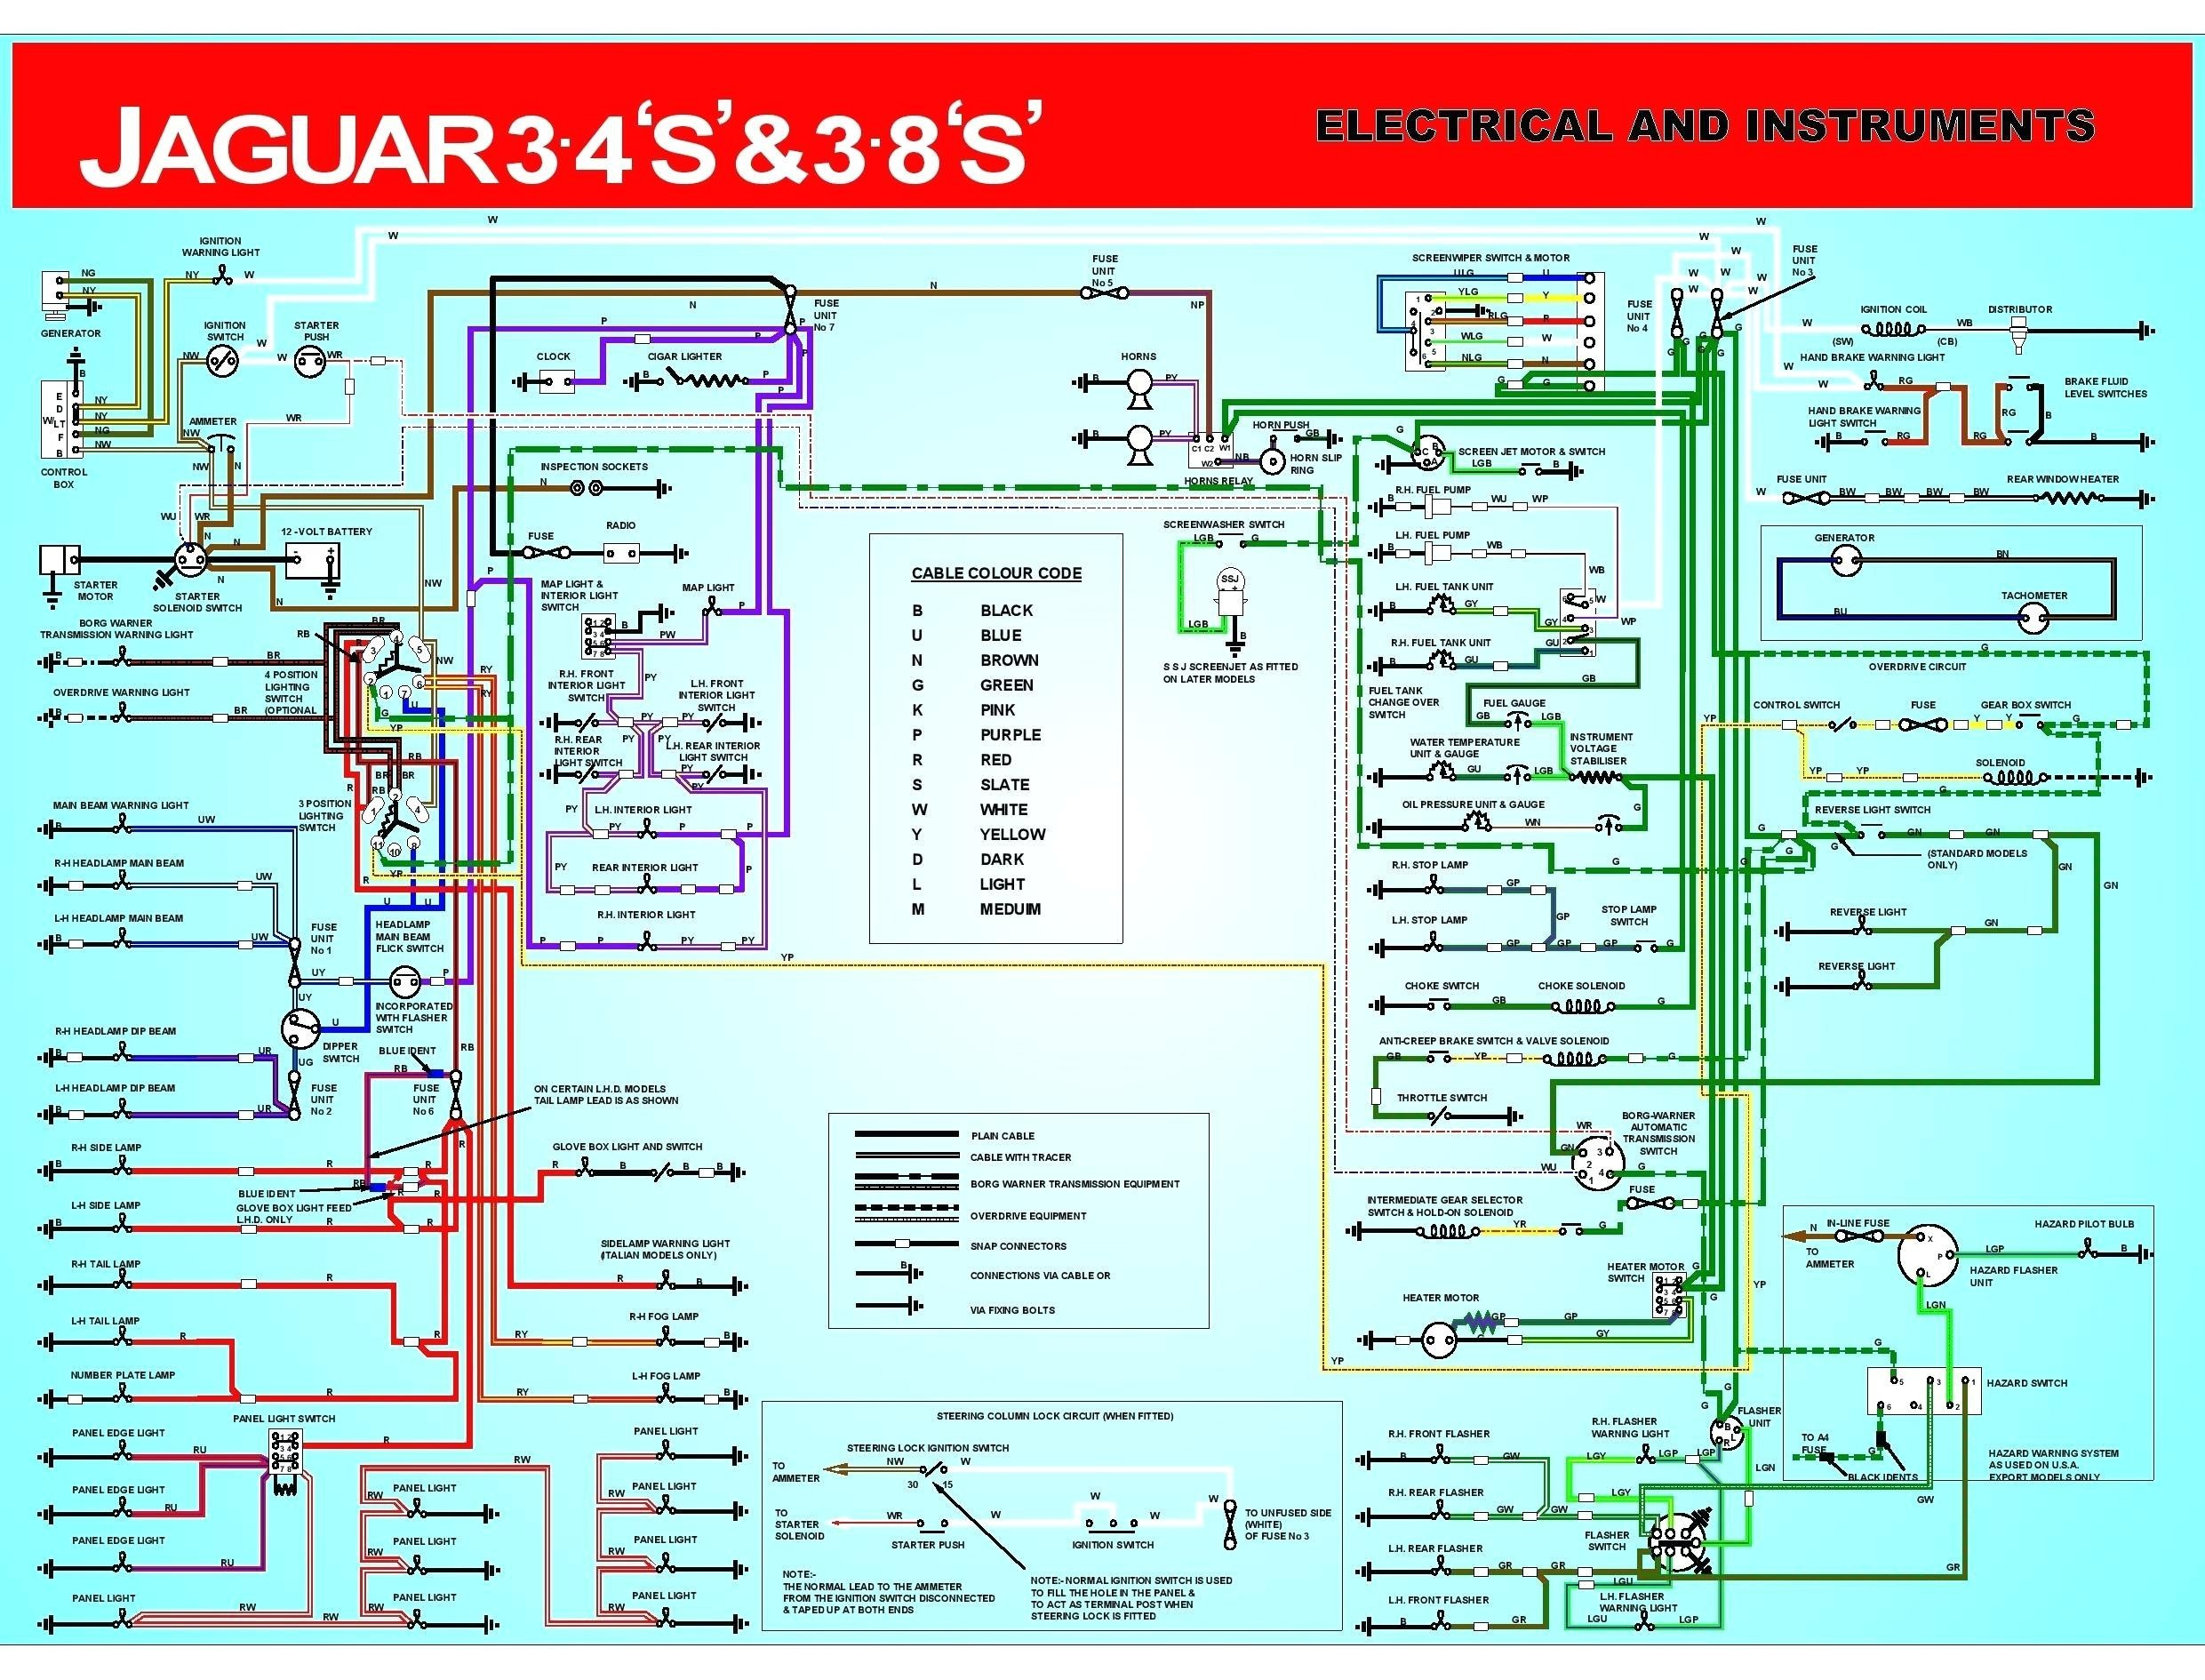 S Type Wiring - Electrical Drawing Wiring Diagram •